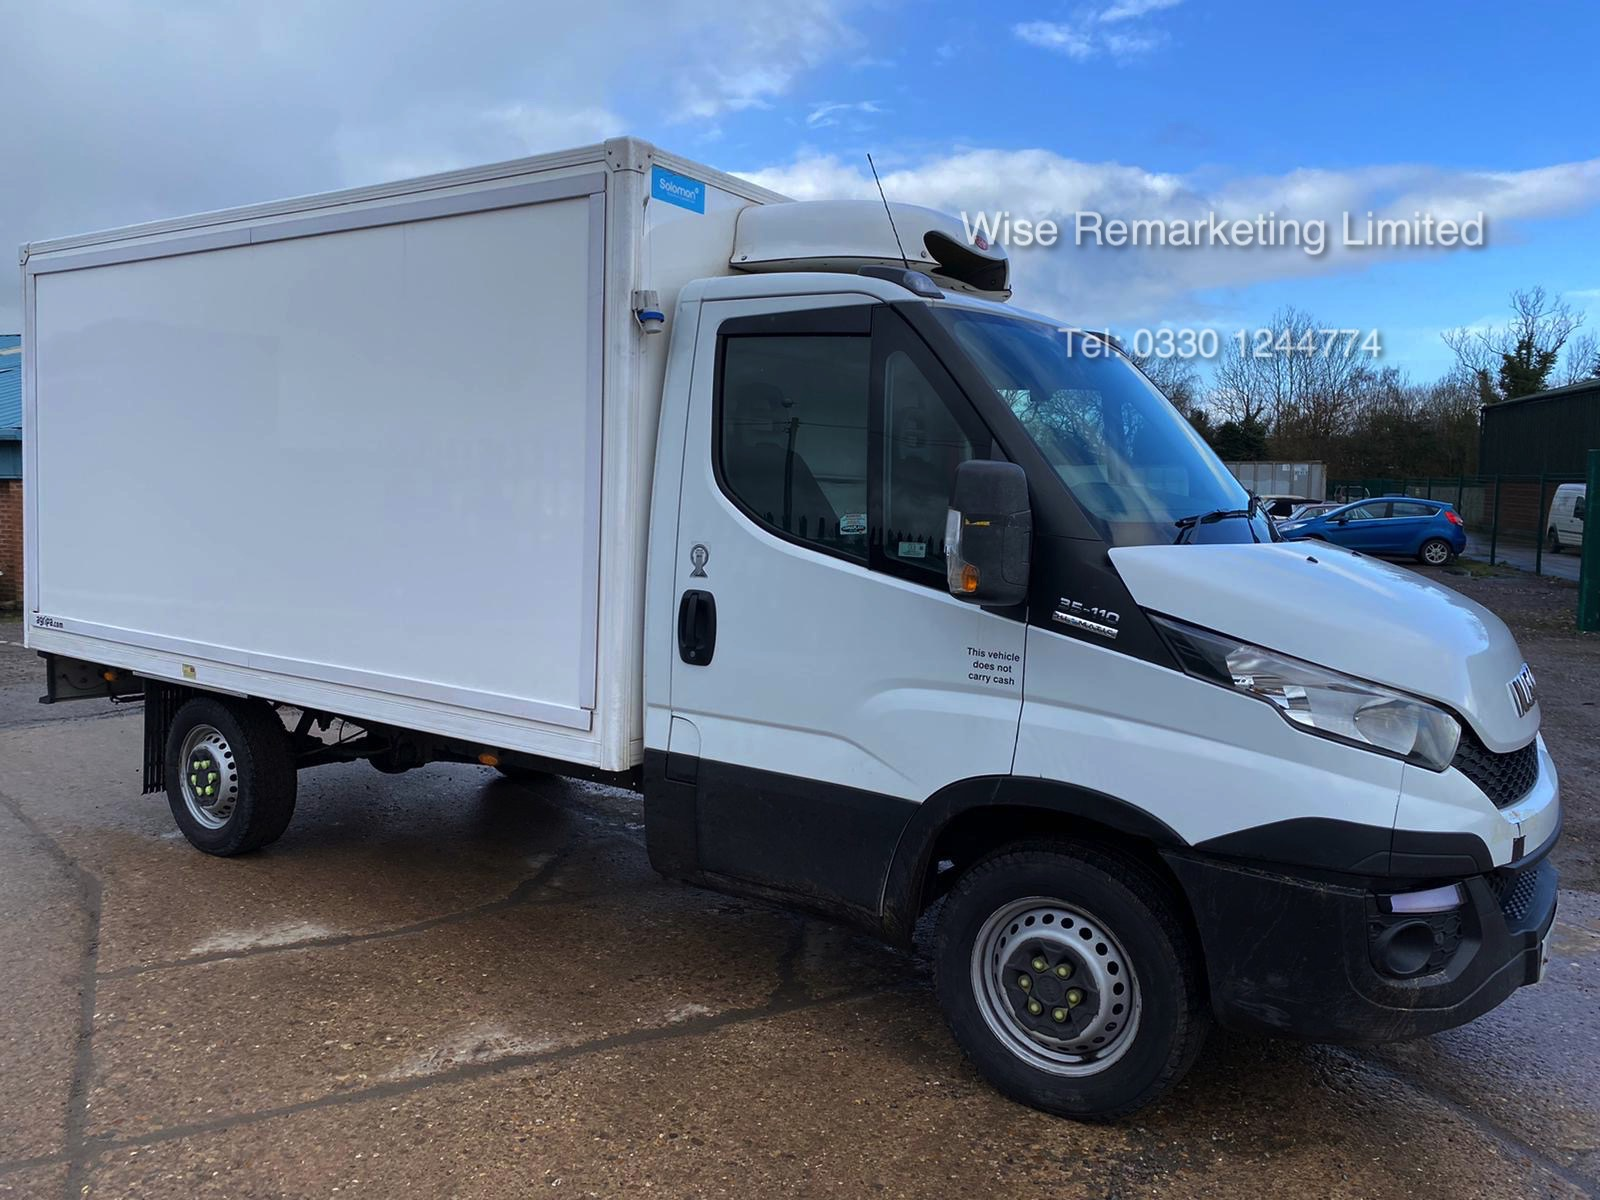 (RESERVE MET) Iveco Daily 35S11 2.3 TD Fridge/Freezer Box Van - 6 Speed - 2015 15 Reg